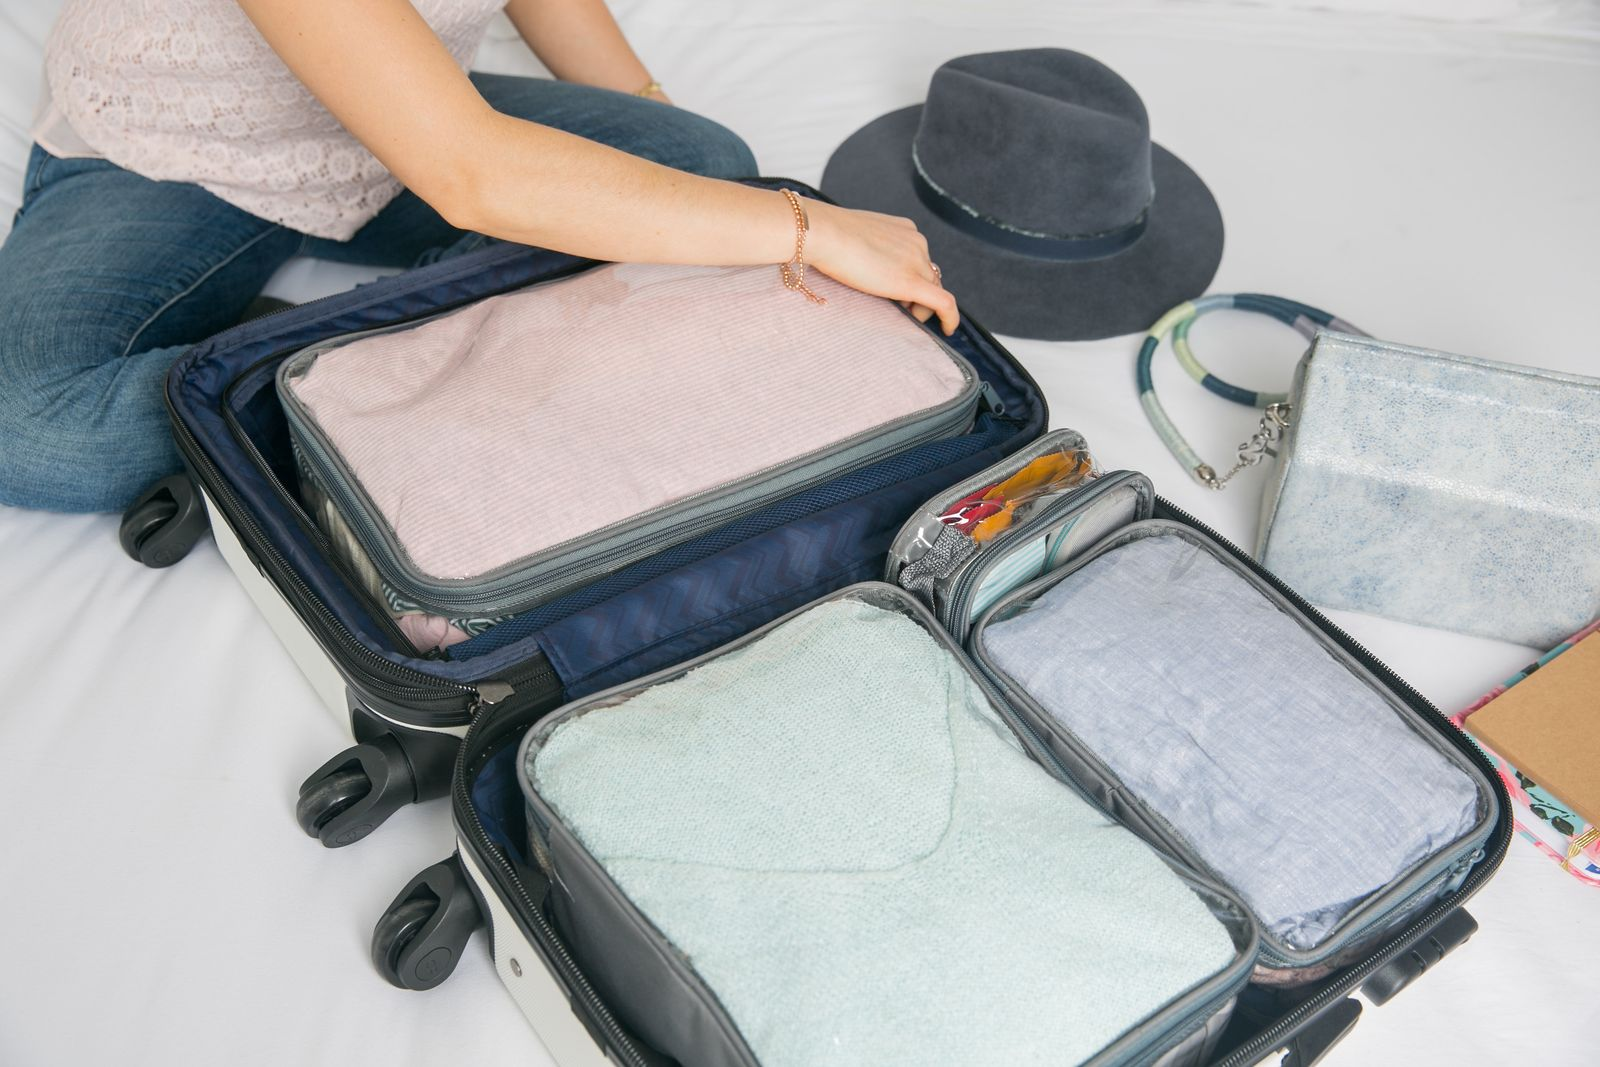 Organizing suitcase using starter set